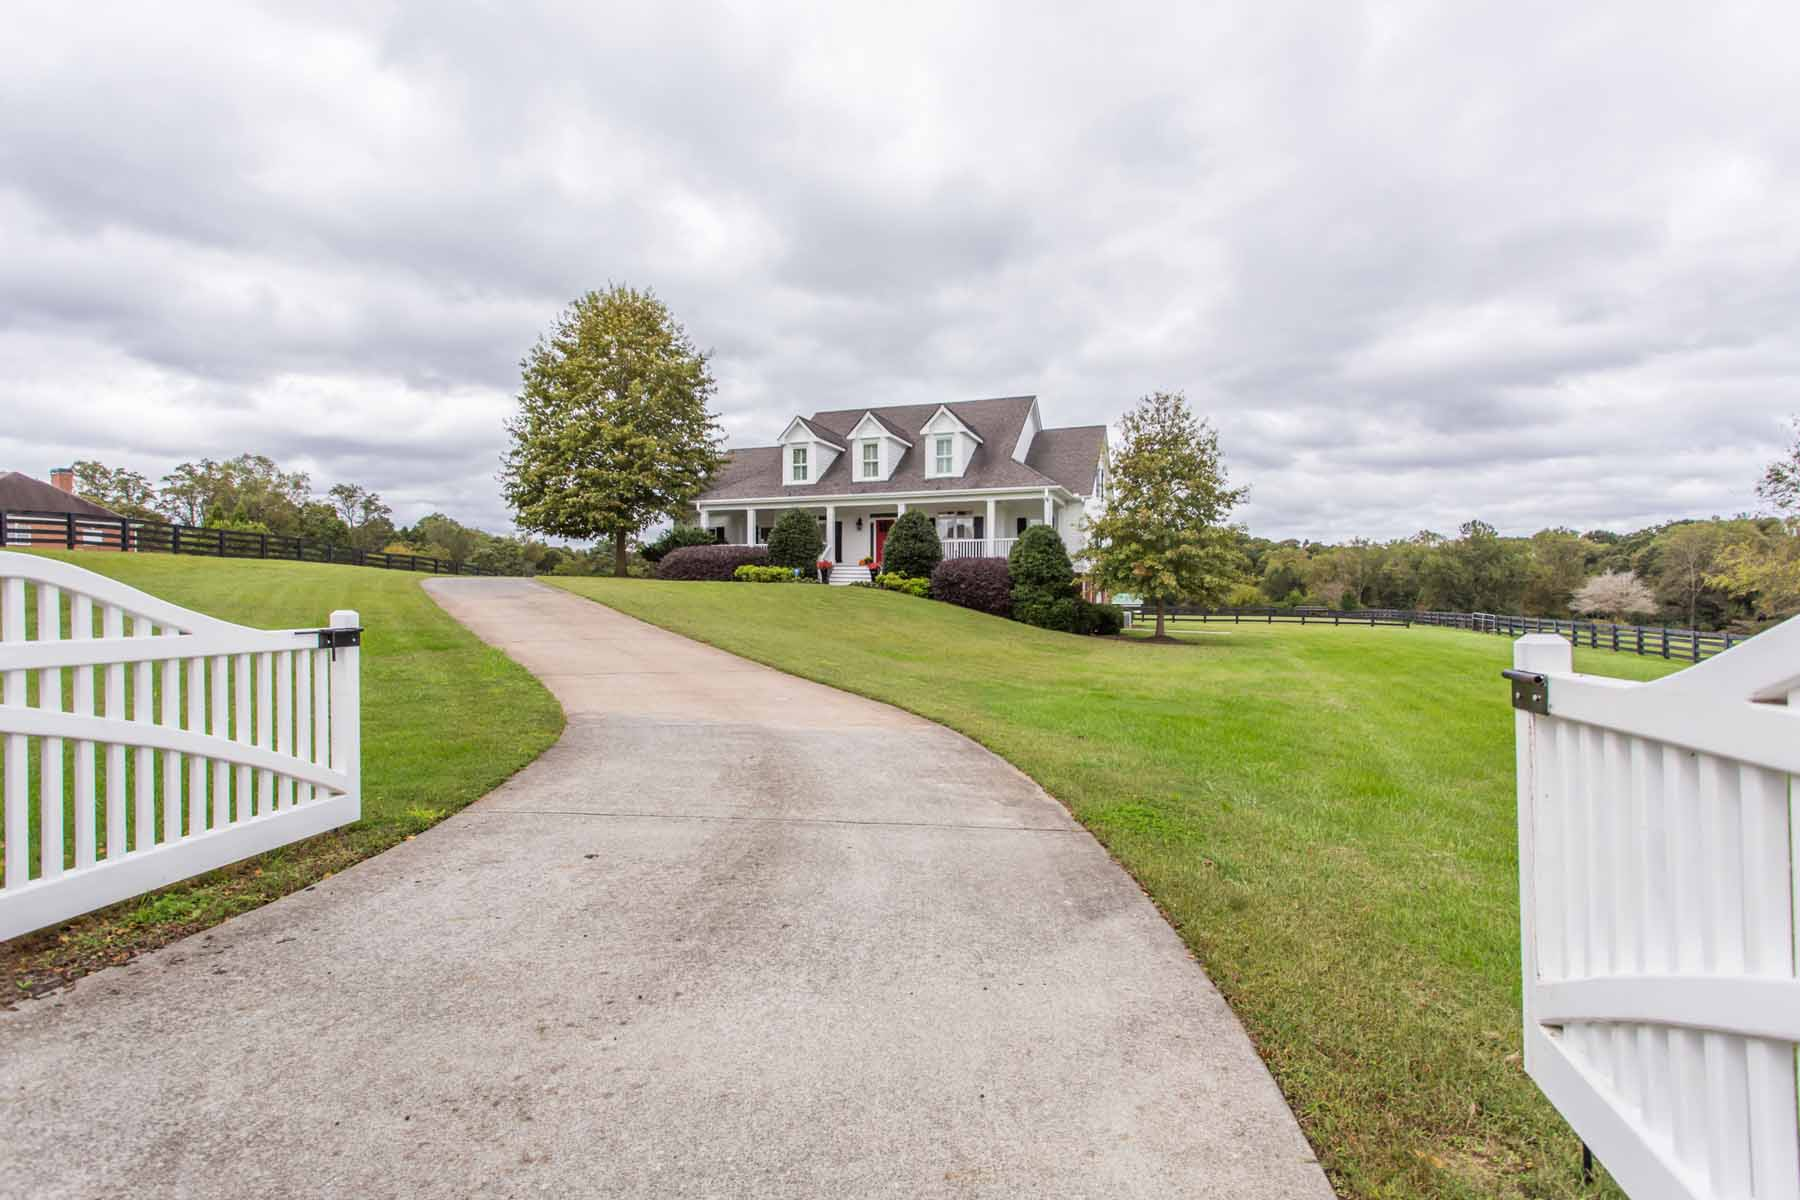 Single Family Home for Sale at Four Acres of Stunning Elegance in Equestrian Setting 1153 Hester Dr Cumming, Georgia, 30028 United States